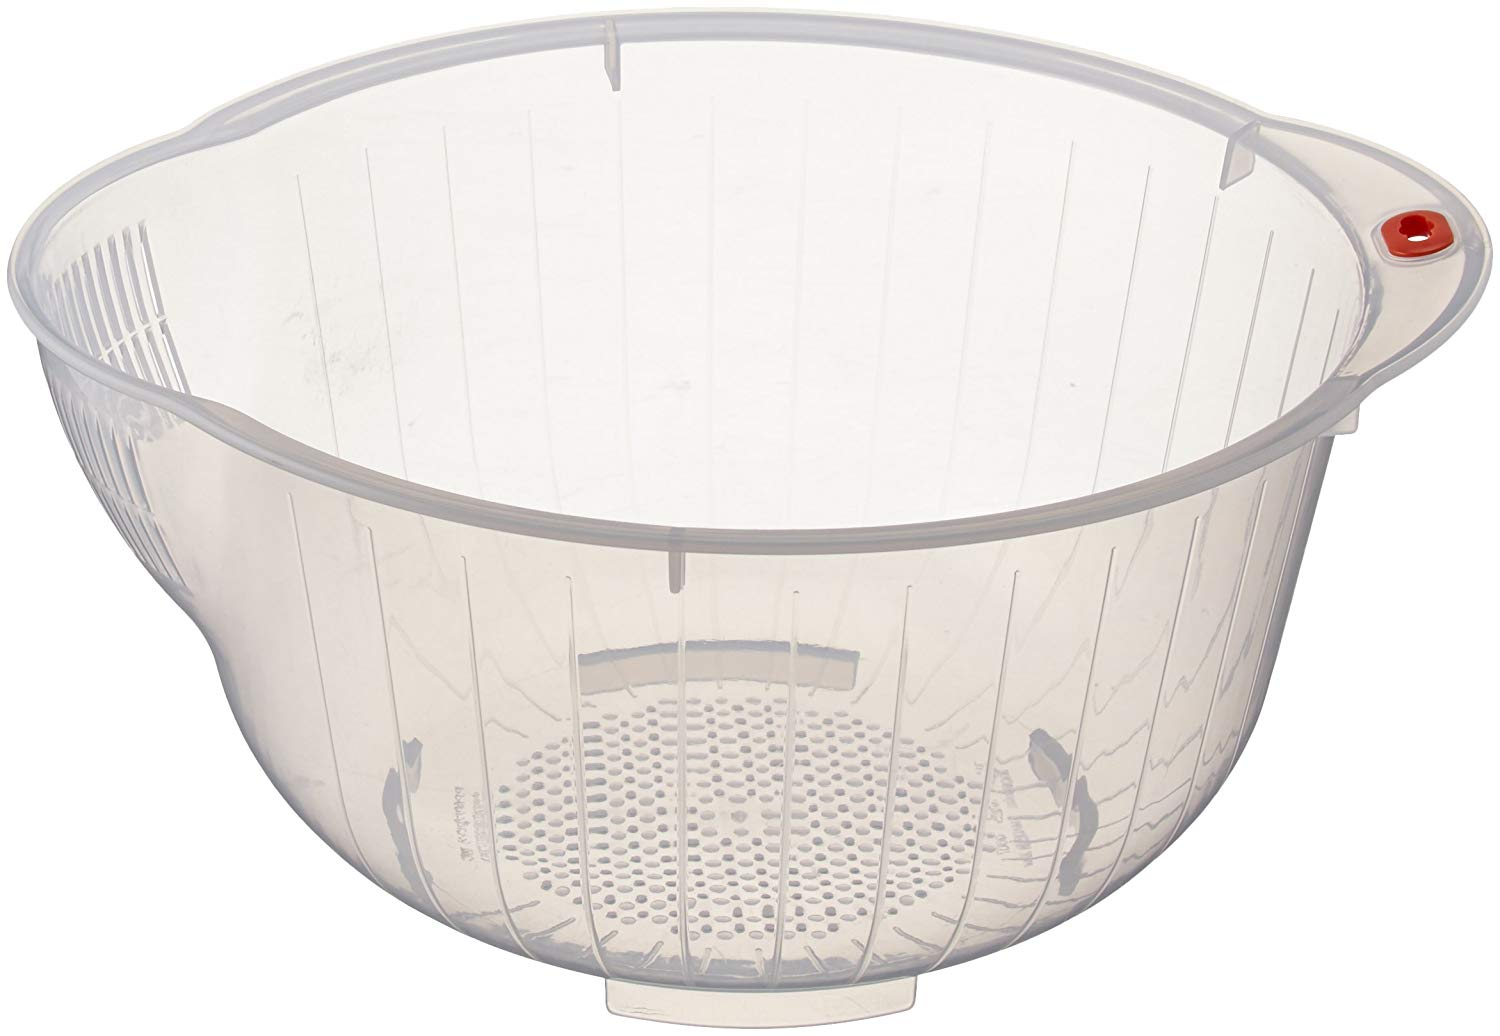 Inomata japanese rice washing bowl